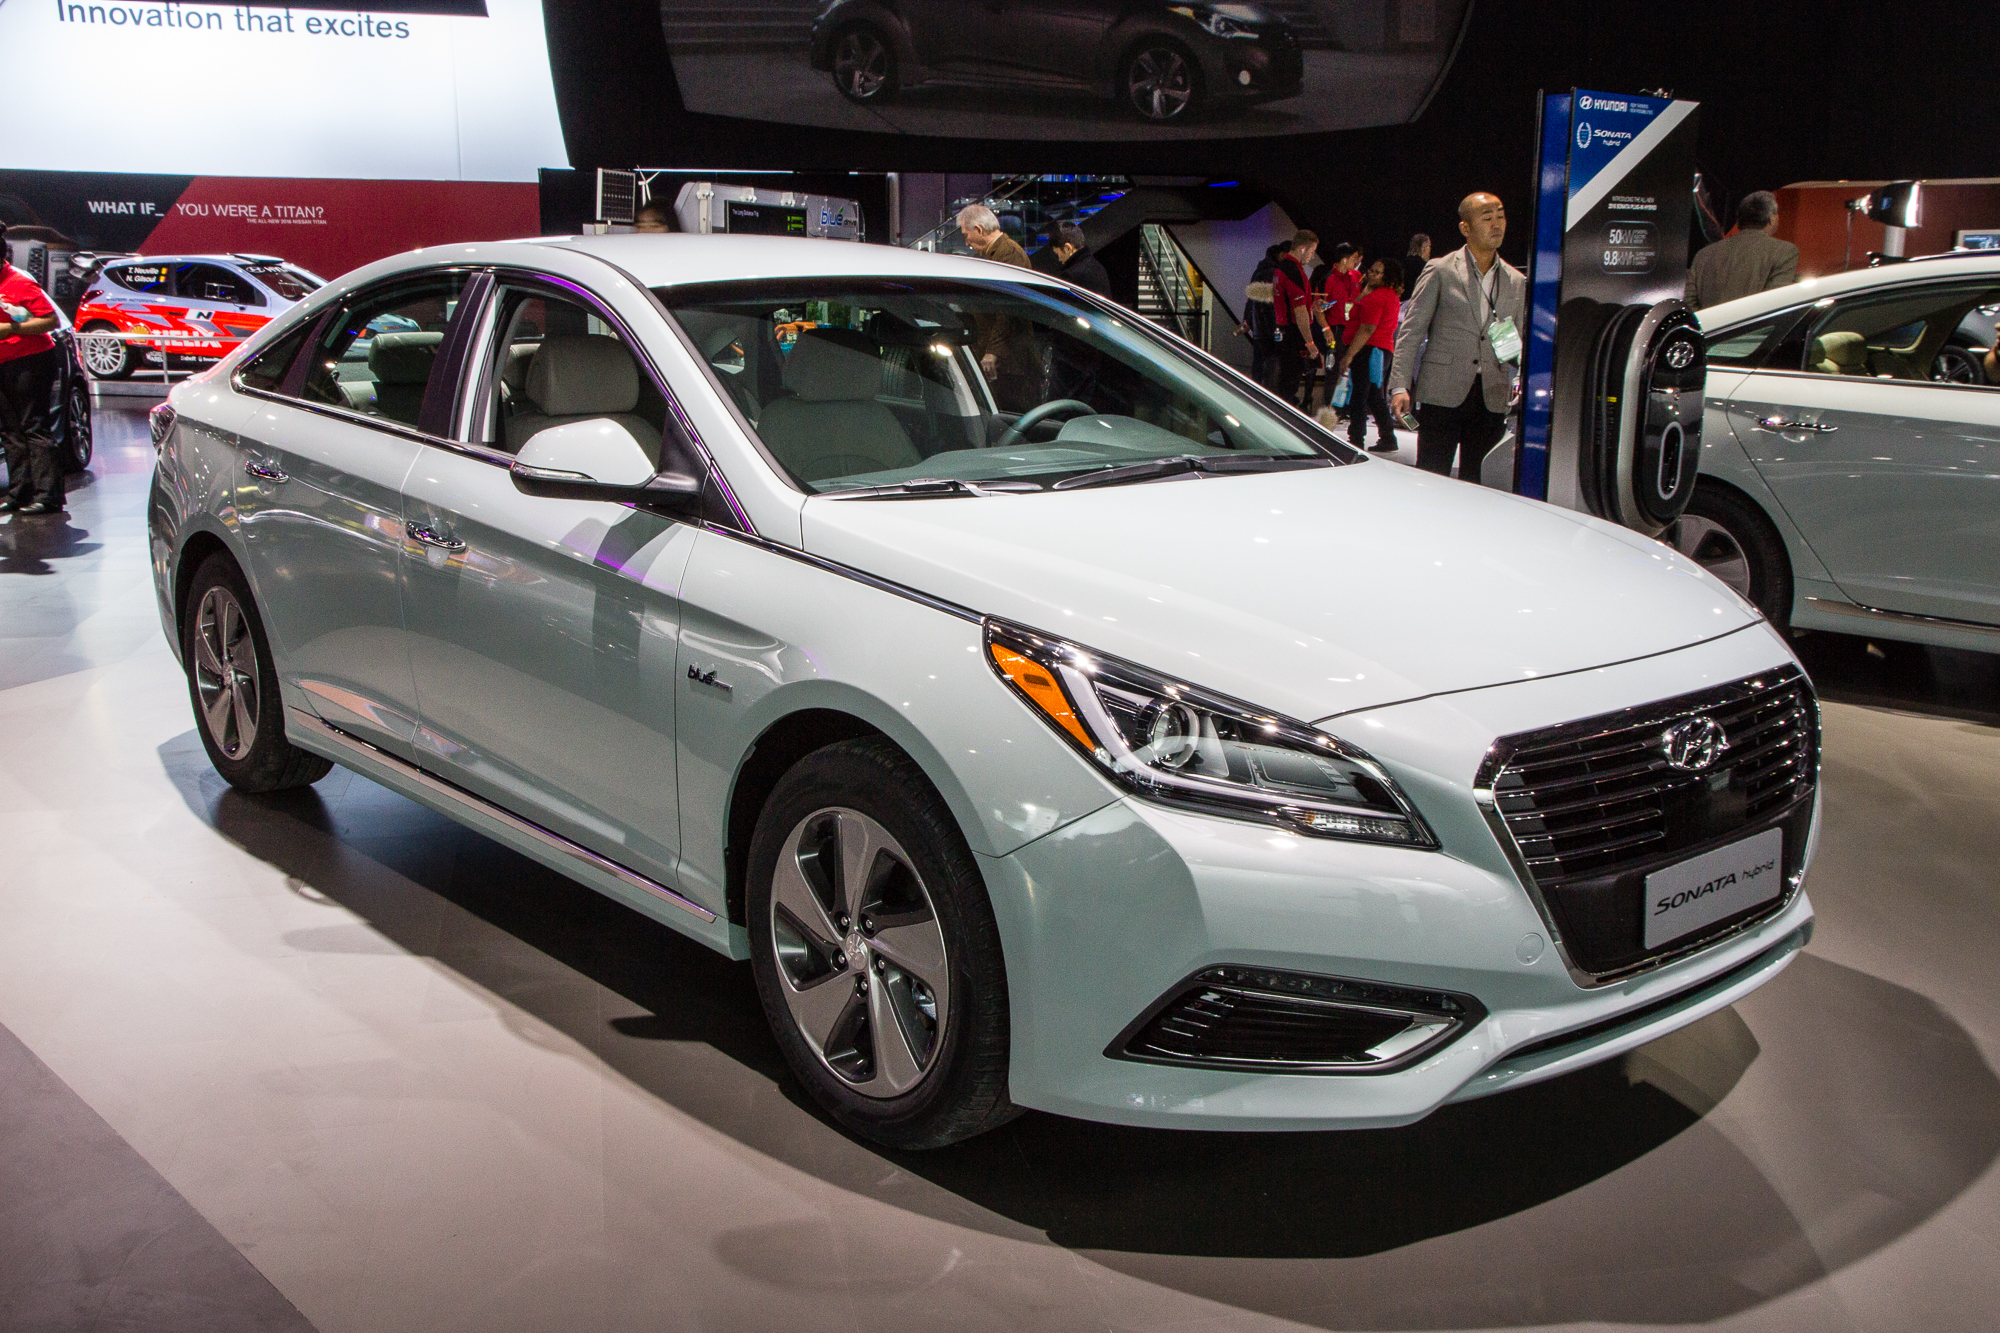 2016 Hyundai Sonata Hybrid & Plug-In Hybrid Debut At 2015 ...